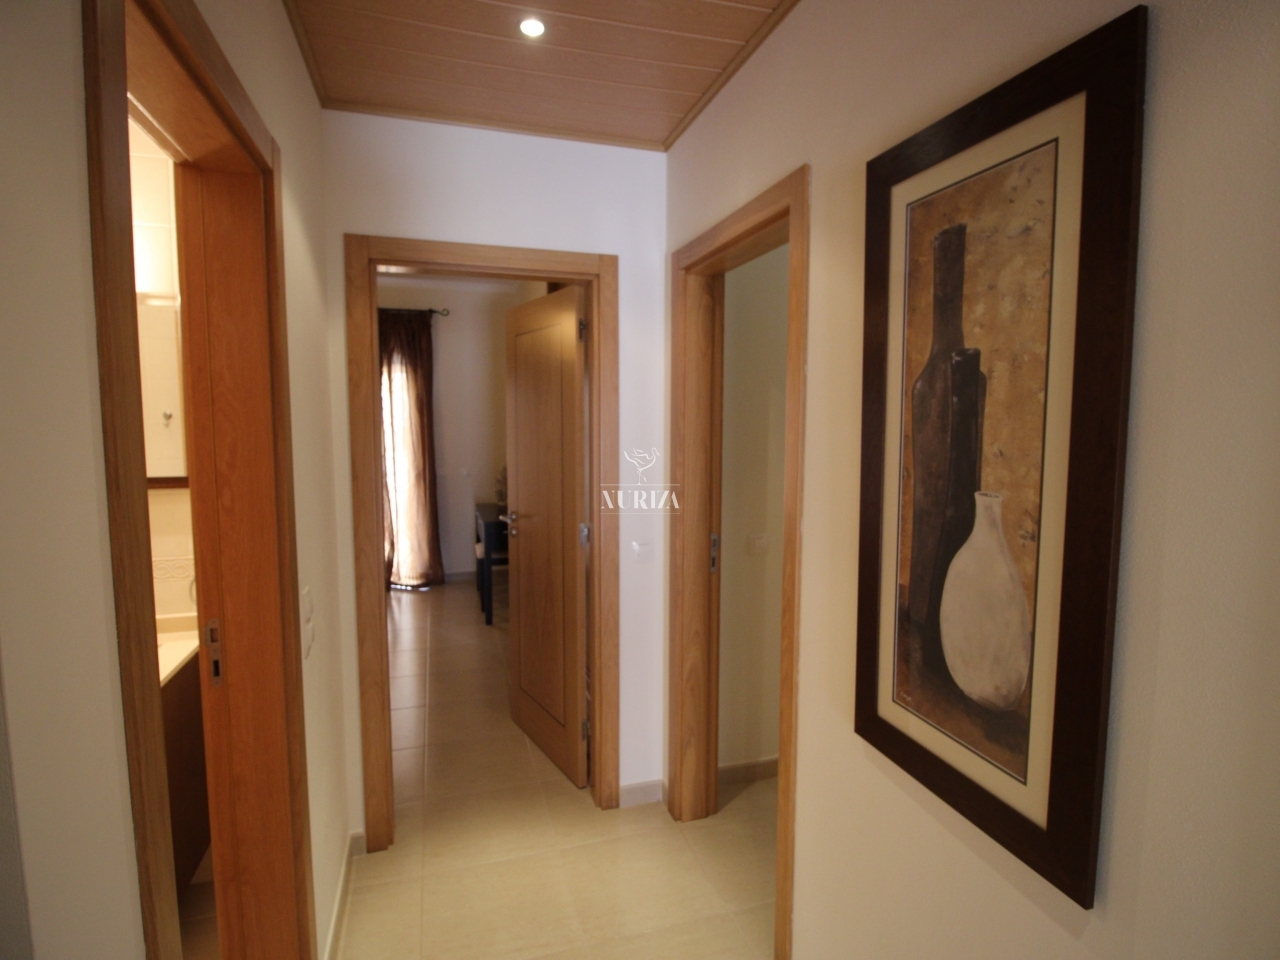 2 bedroom Apartment - Lagos